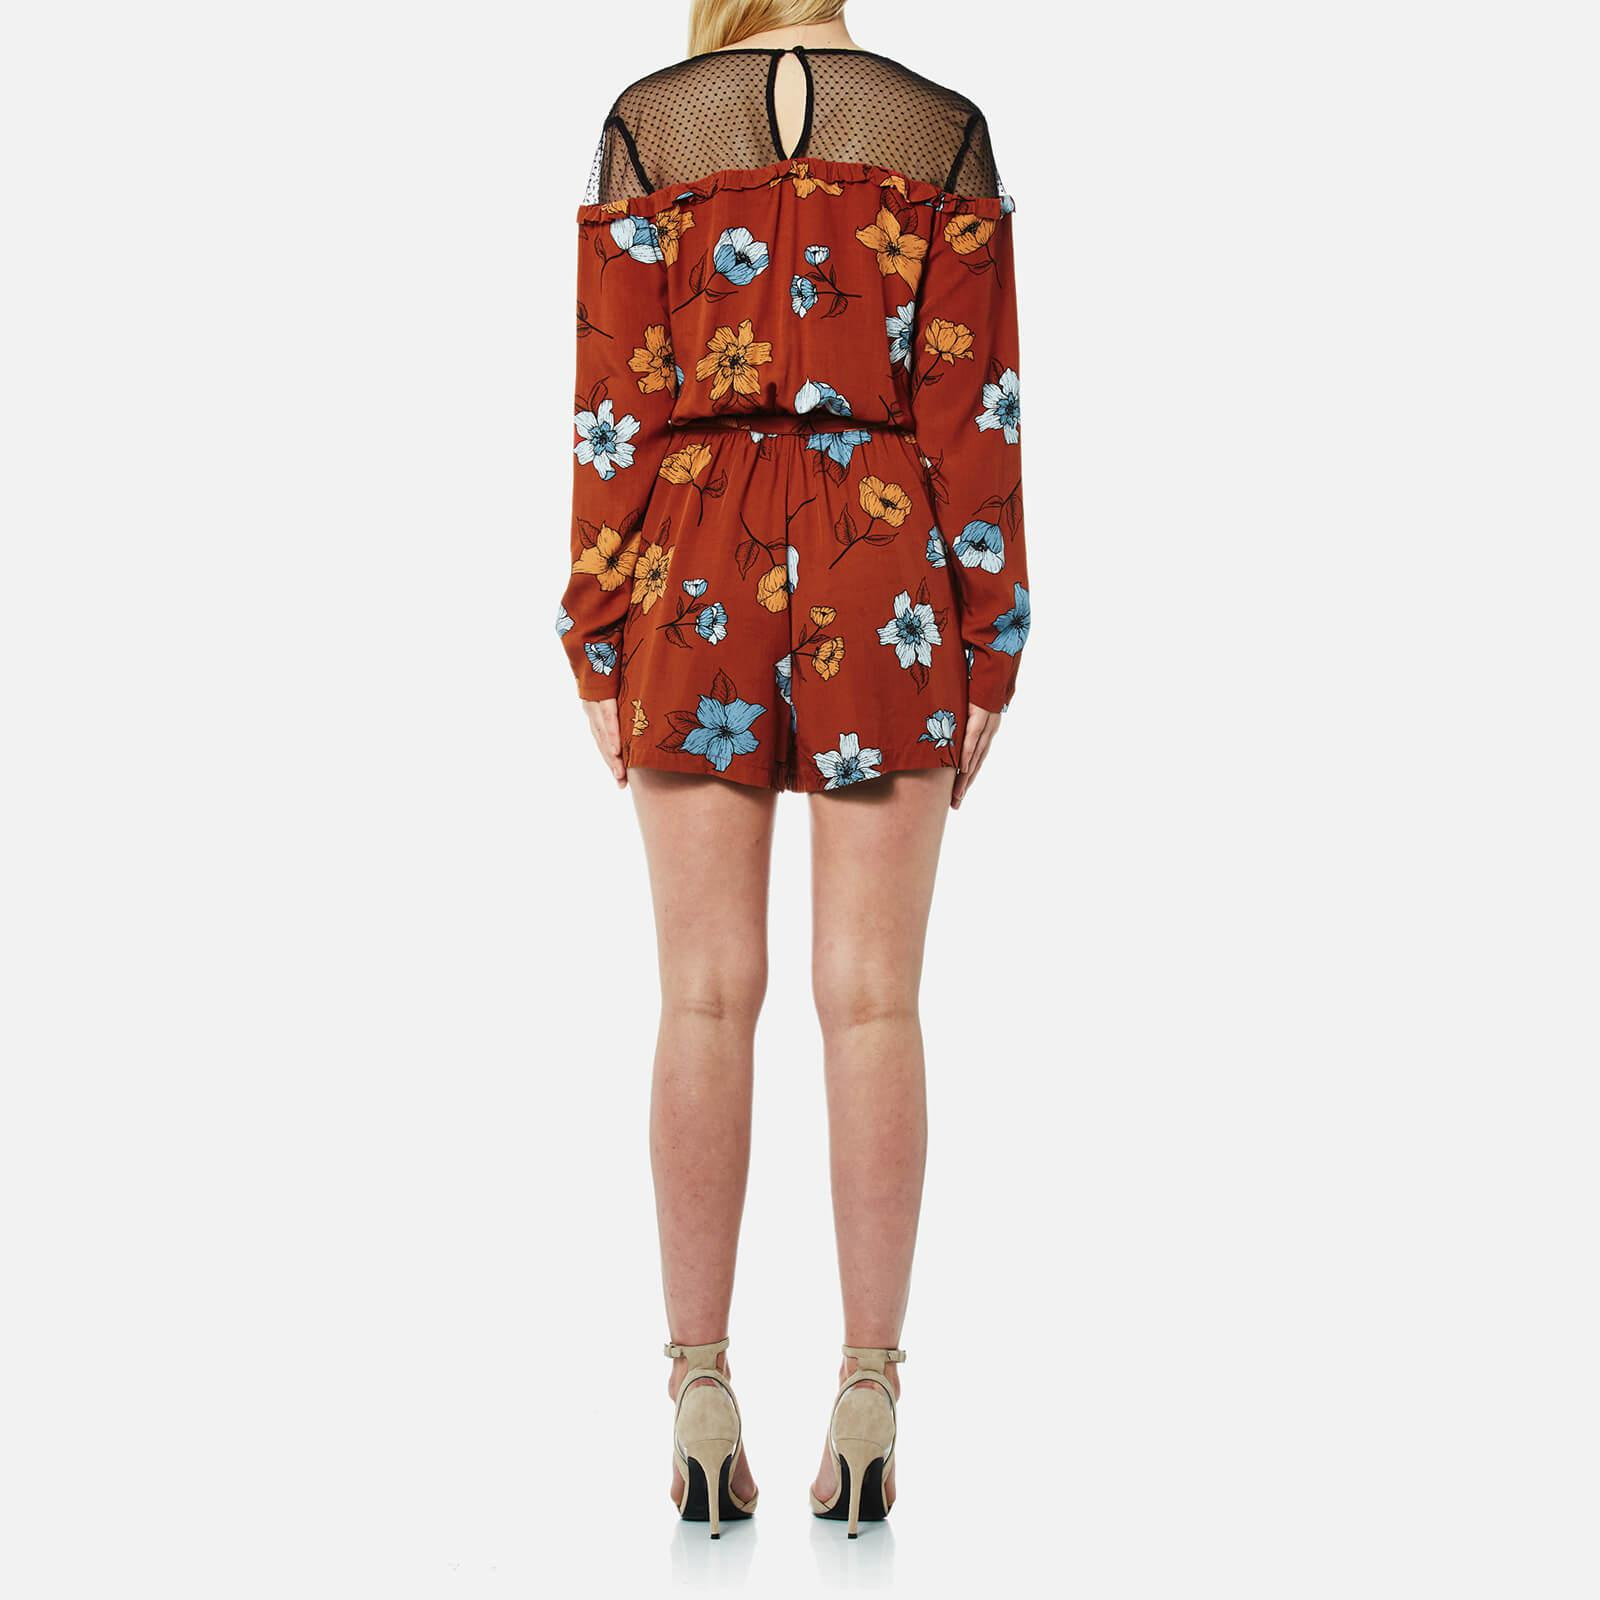 180e23762e Lyst - MINKPINK Ornate Playsuit in Red - Save 27.272727272727266%